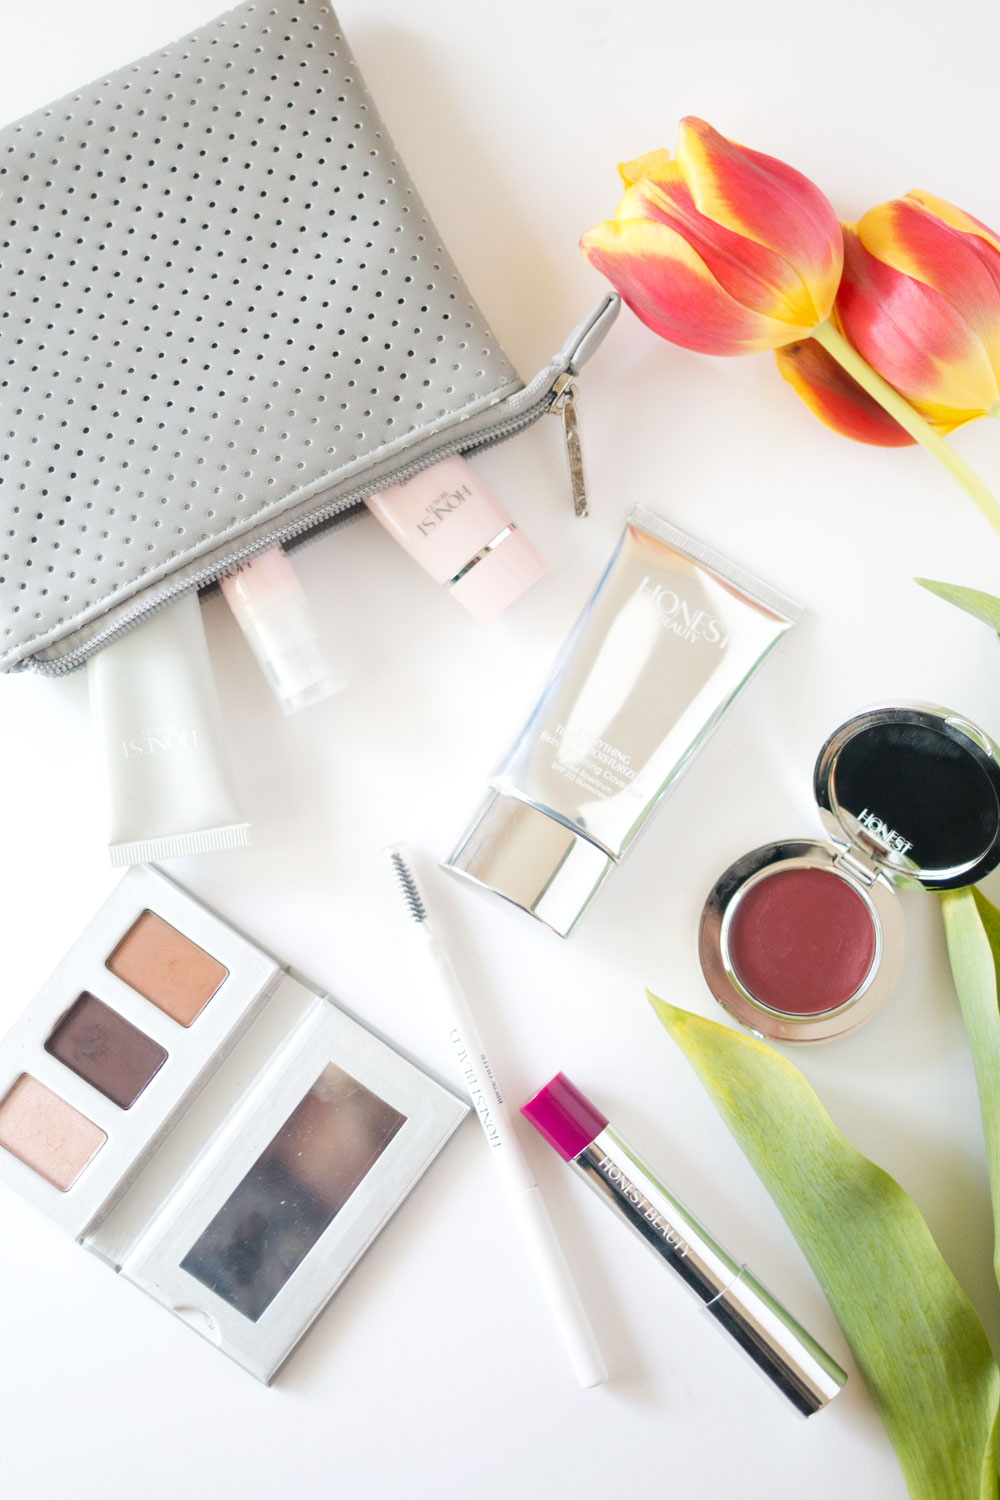 Honest Beauty Review: Skincare & Makeup // Hello Rigby Seattle Beauty & Makeup Blog